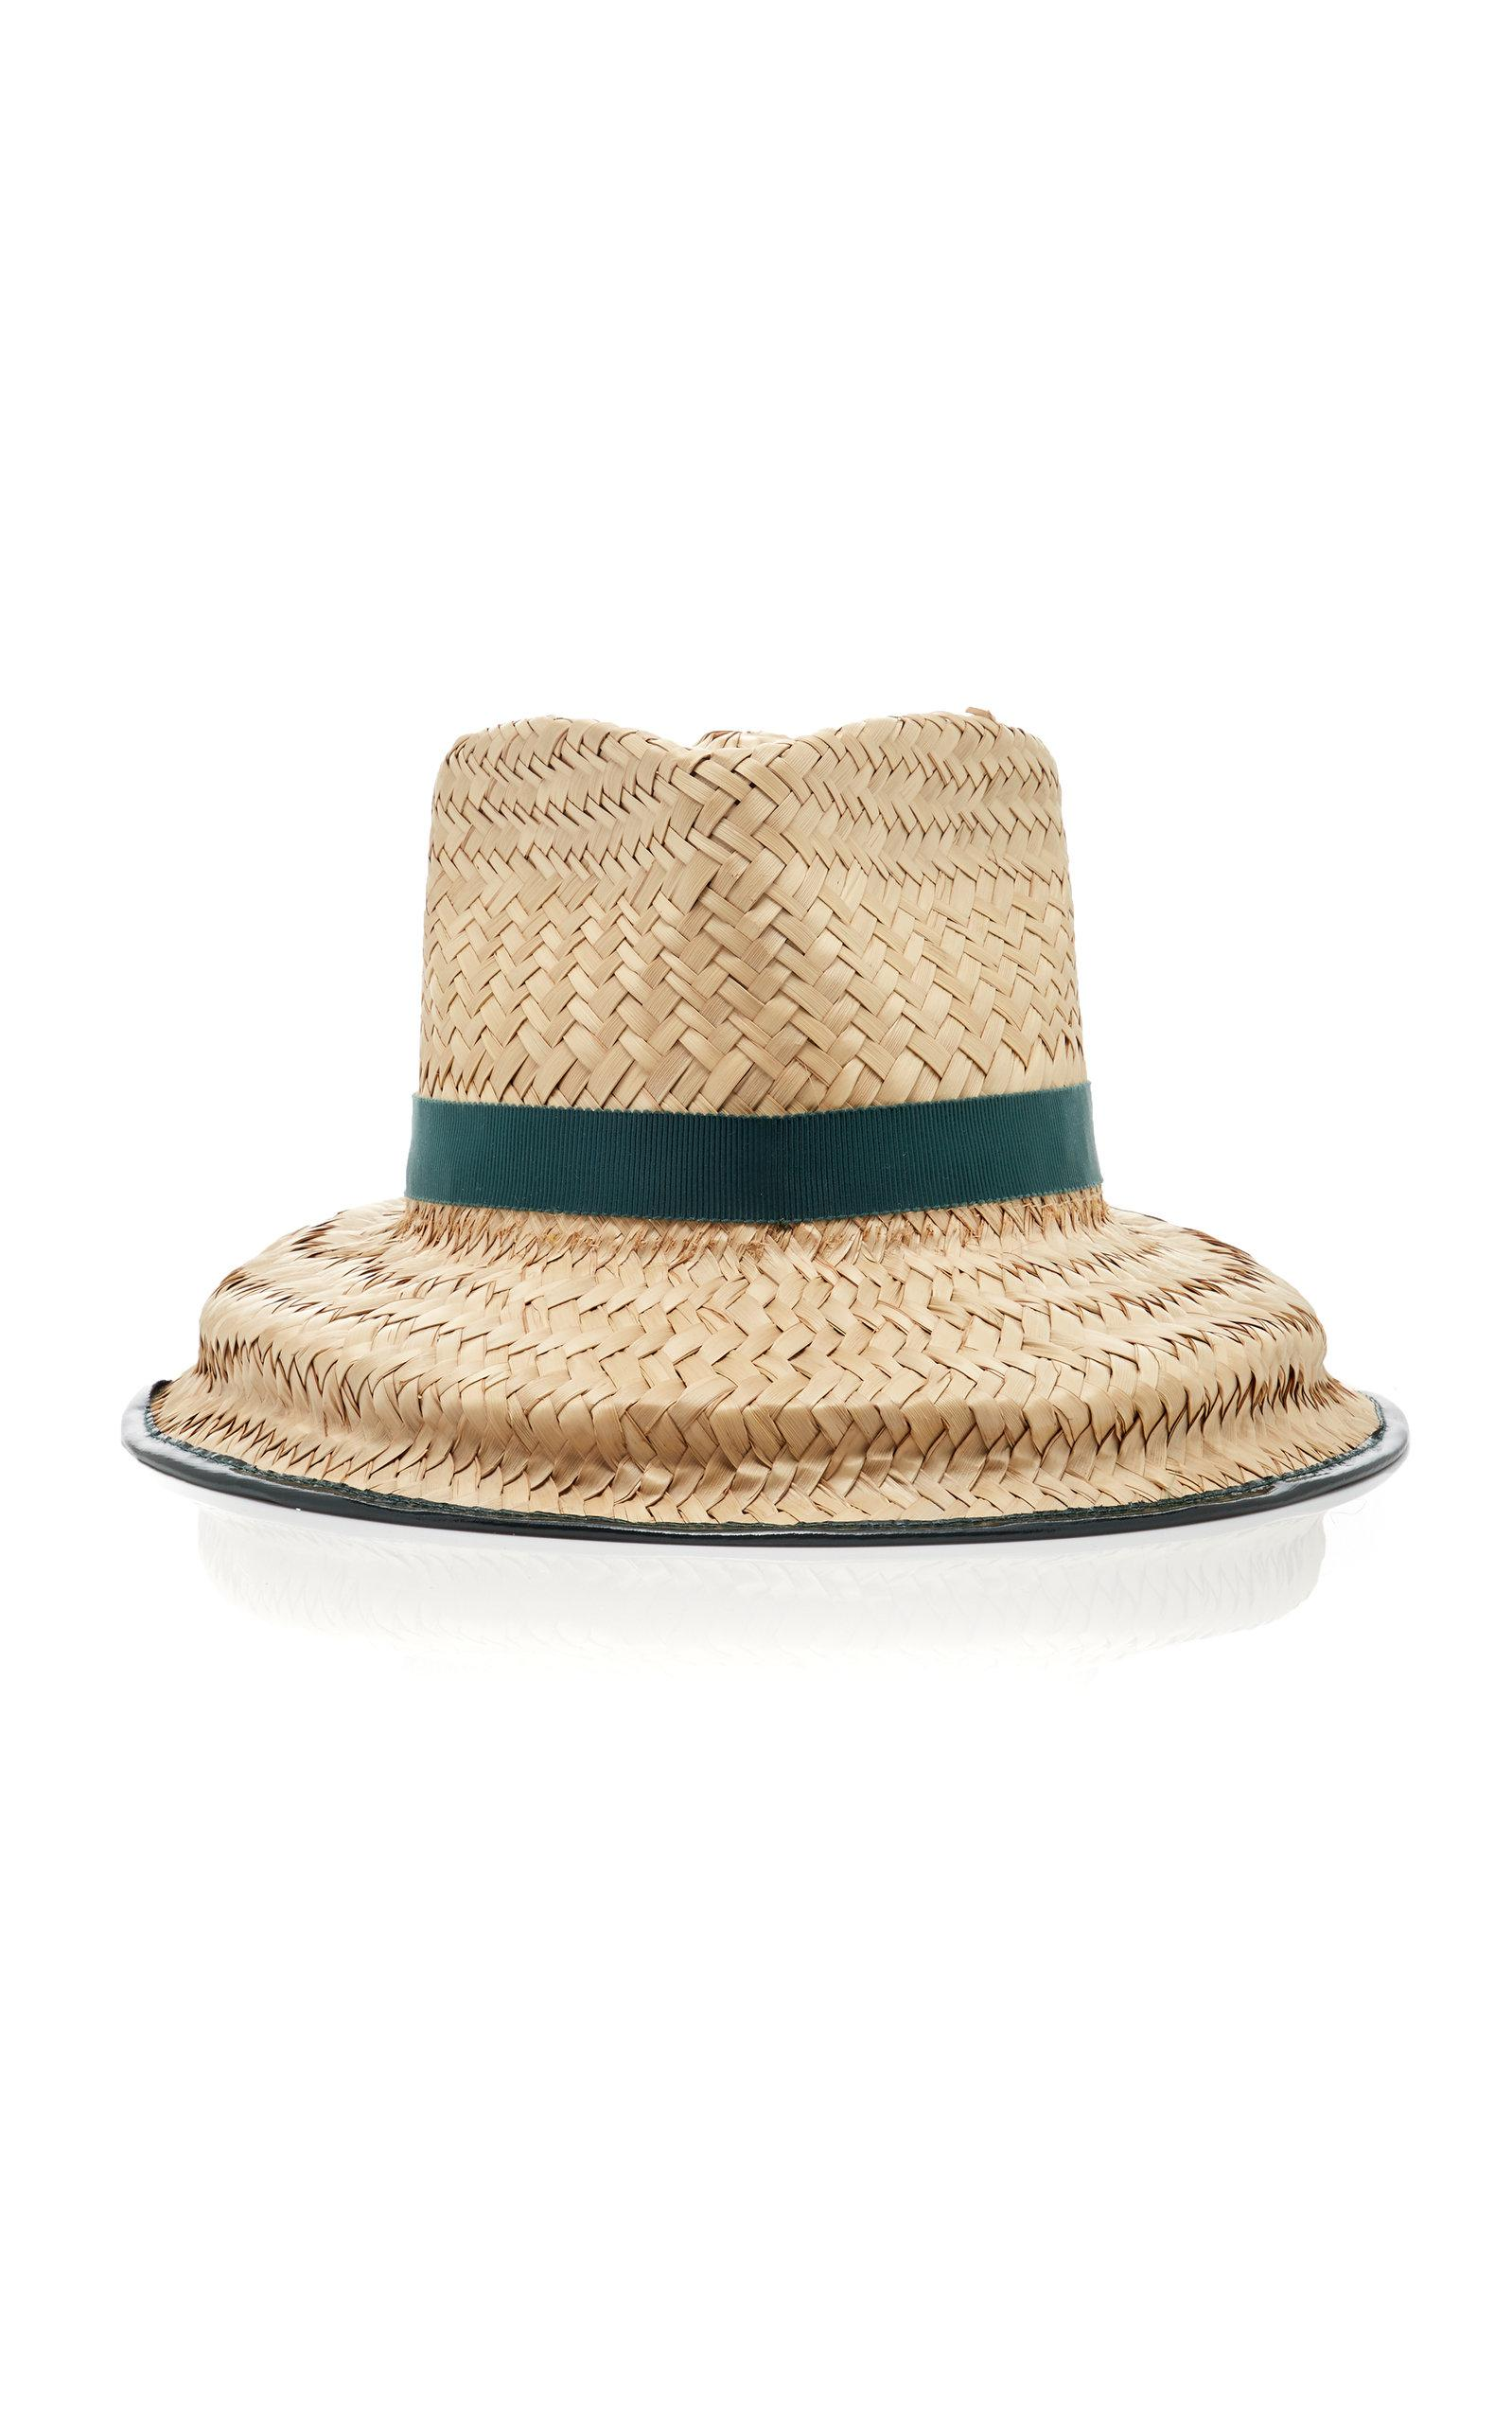 Lyst - Tory Burch Structured Basket-weave Hat in Green a48801cbe355